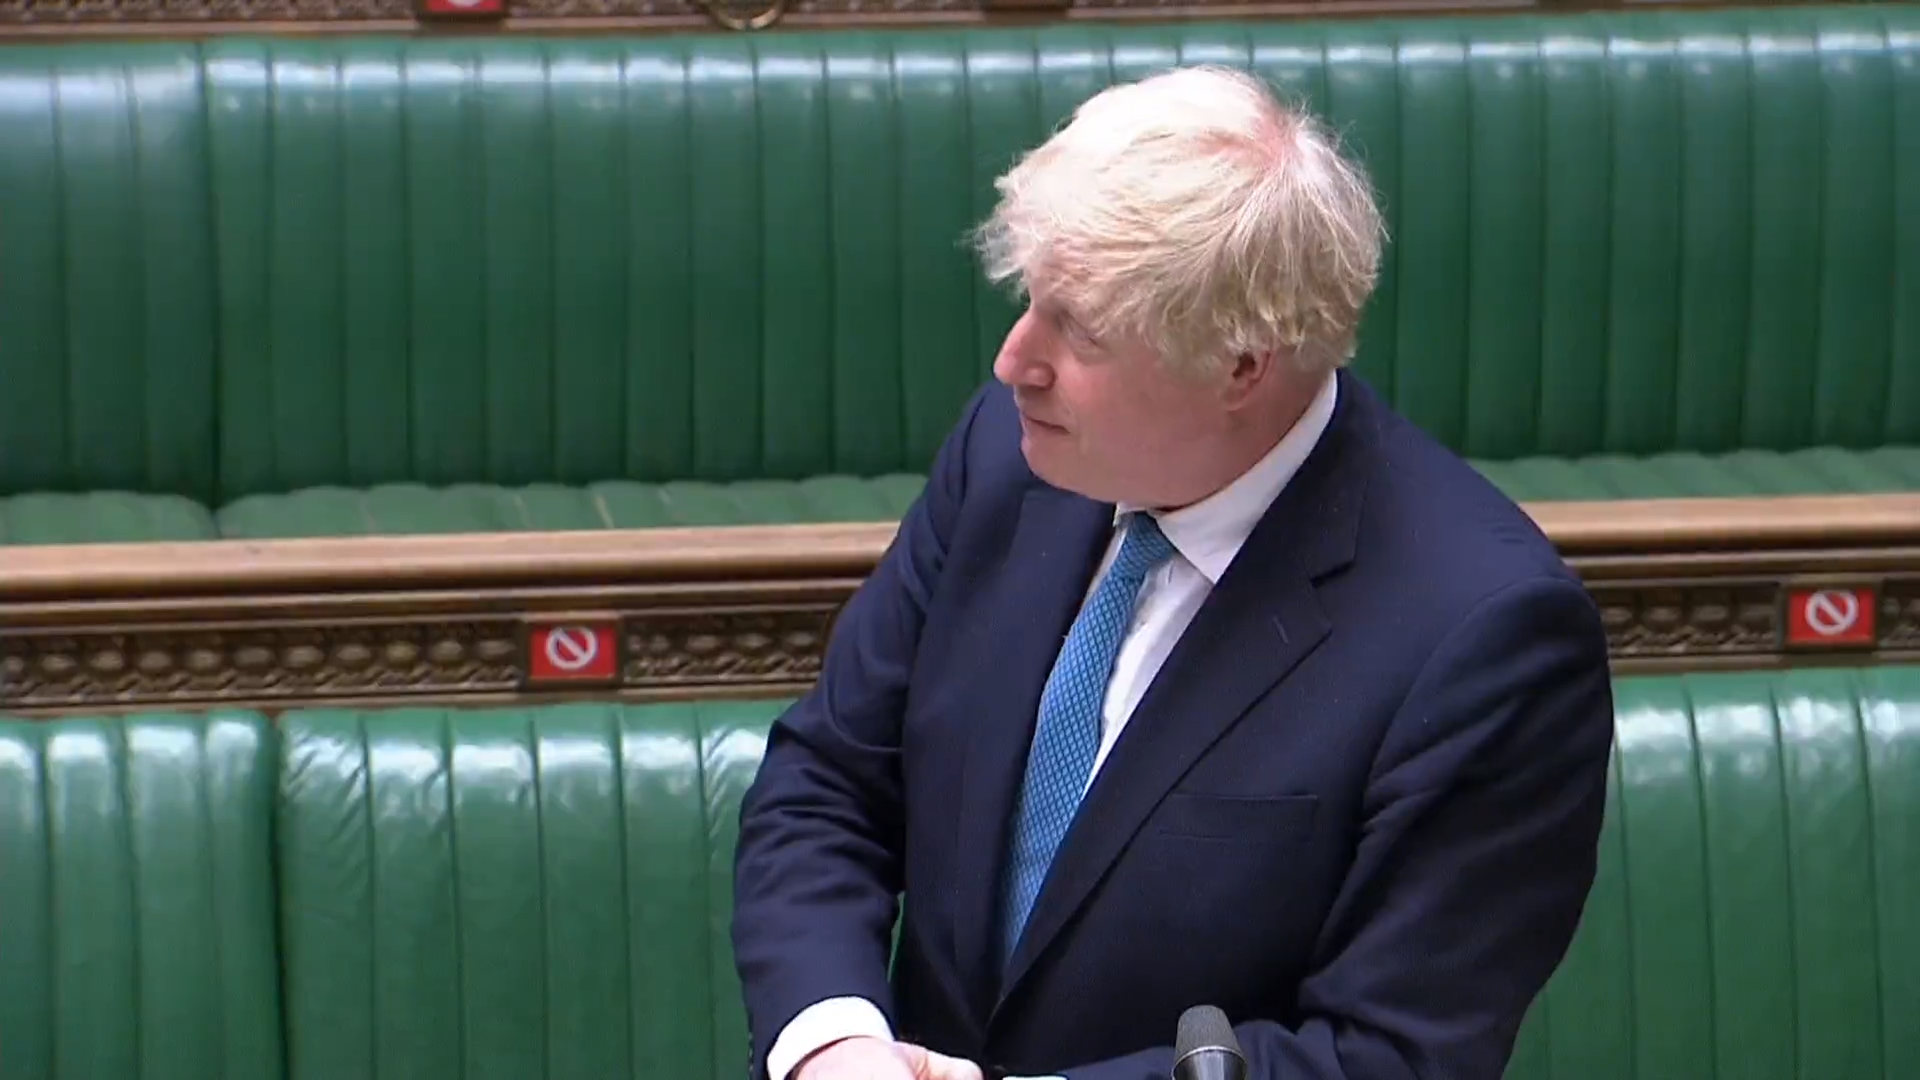 Boris Johnson says UK must turn 'jabs into jobs' after pandemic - channel 4